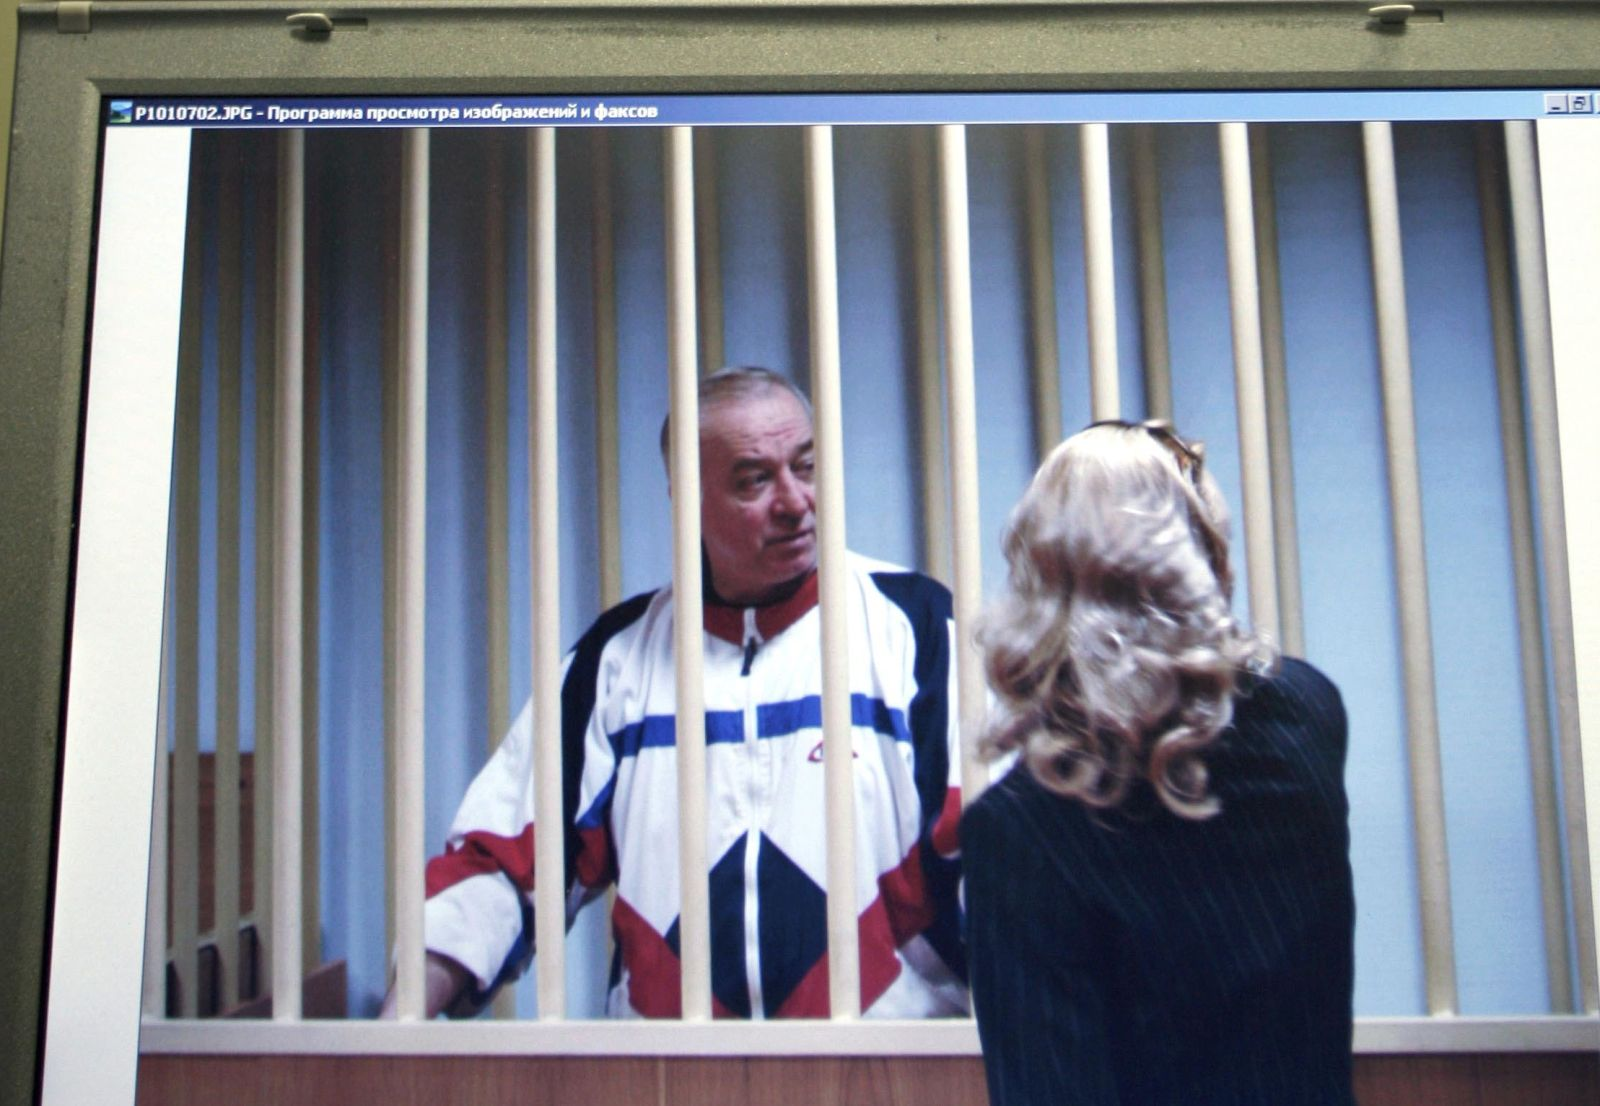 rFILE - In this Wednesday, Aug. 9, 2006 file photo, Sergei Skripal speaks to his lawyer from behind bars seen on a screen of a monitor outside a courtroom in Moscow. It has been reported on Monday, March 5, 2018 by the British media that Skripal is in critical condition after exposure to unknown substance in English city of Salisbury. (AP Photo/Misha Japaridze, File)